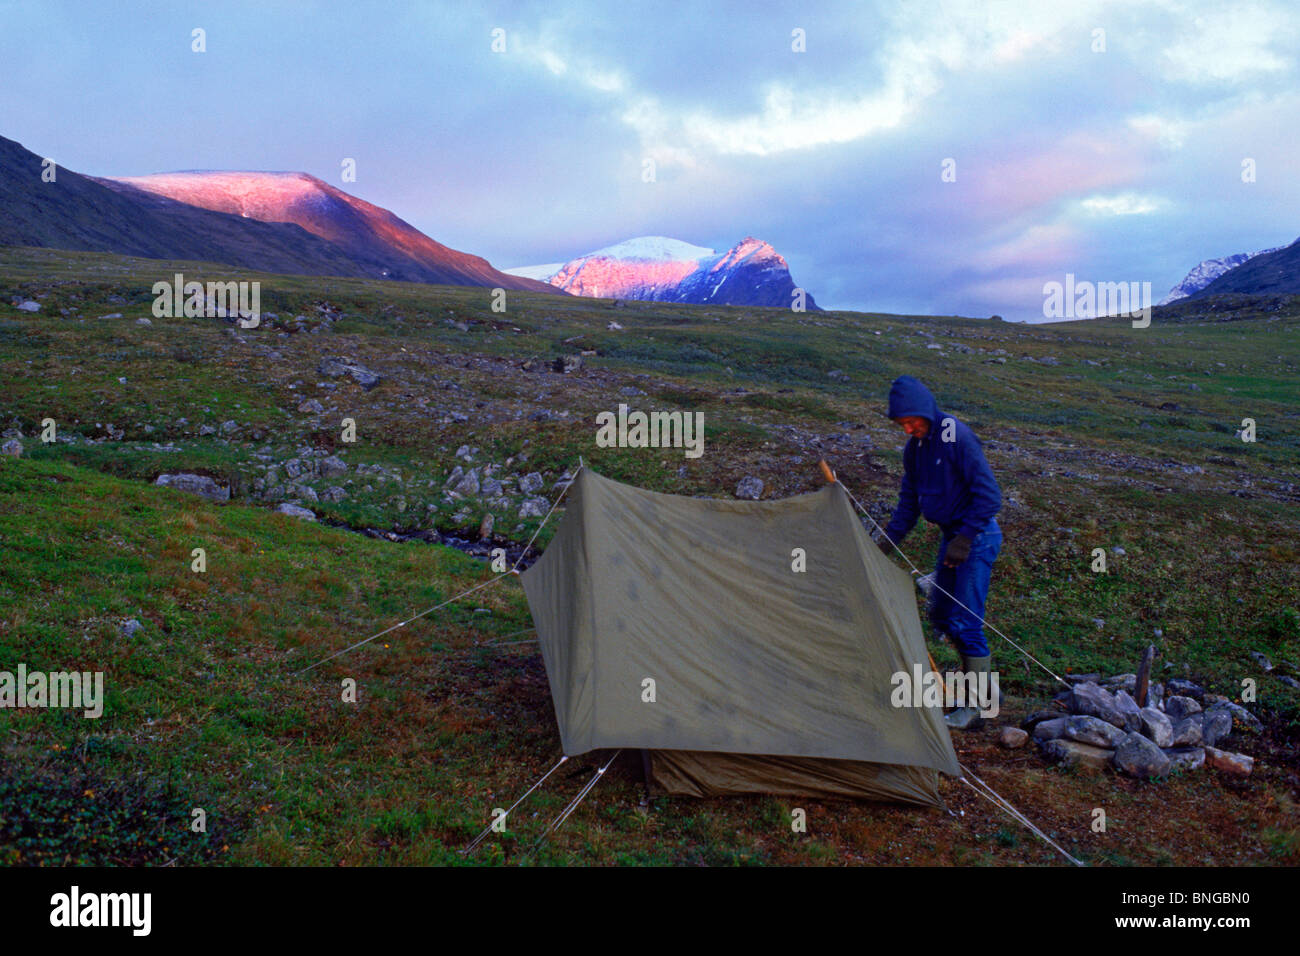 carefree mobile home park html with Stock Photo Hiker With Isolated Tent At Sunset In Rapadalen Valley In Sarek National 30478588 on World Map Not Labeled together with Vectorworldmap additionally Stock Photo Two Happy Senior Citizens Dancing And Smiling In A Dancing Class 63772661 together with Catalinas72 likewise Stock Photo Hiker With Isolated Tent At Sunset In Rapadalen Valley In Sarek National 30478588.